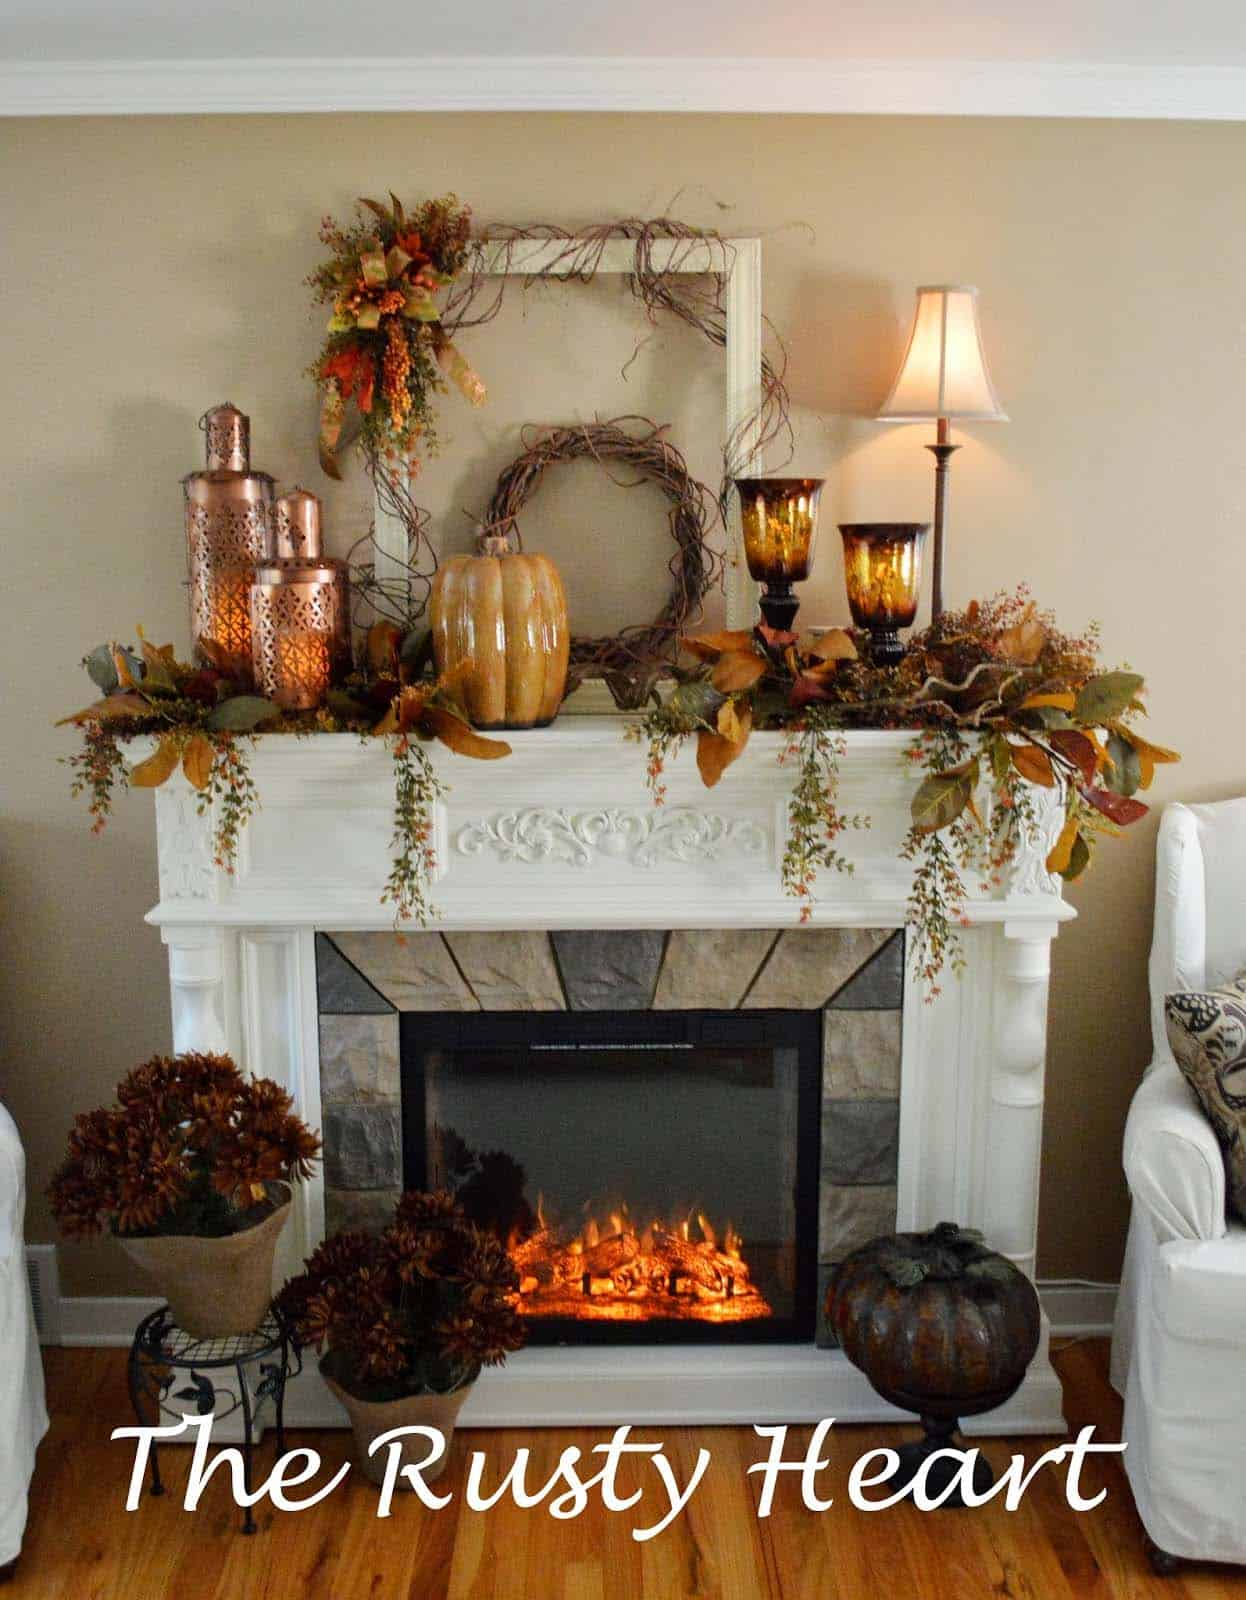 How To Decorate Fireplace Wall 30 43 Amazing Fall Decorating Ideas For Your Fireplace Mantel